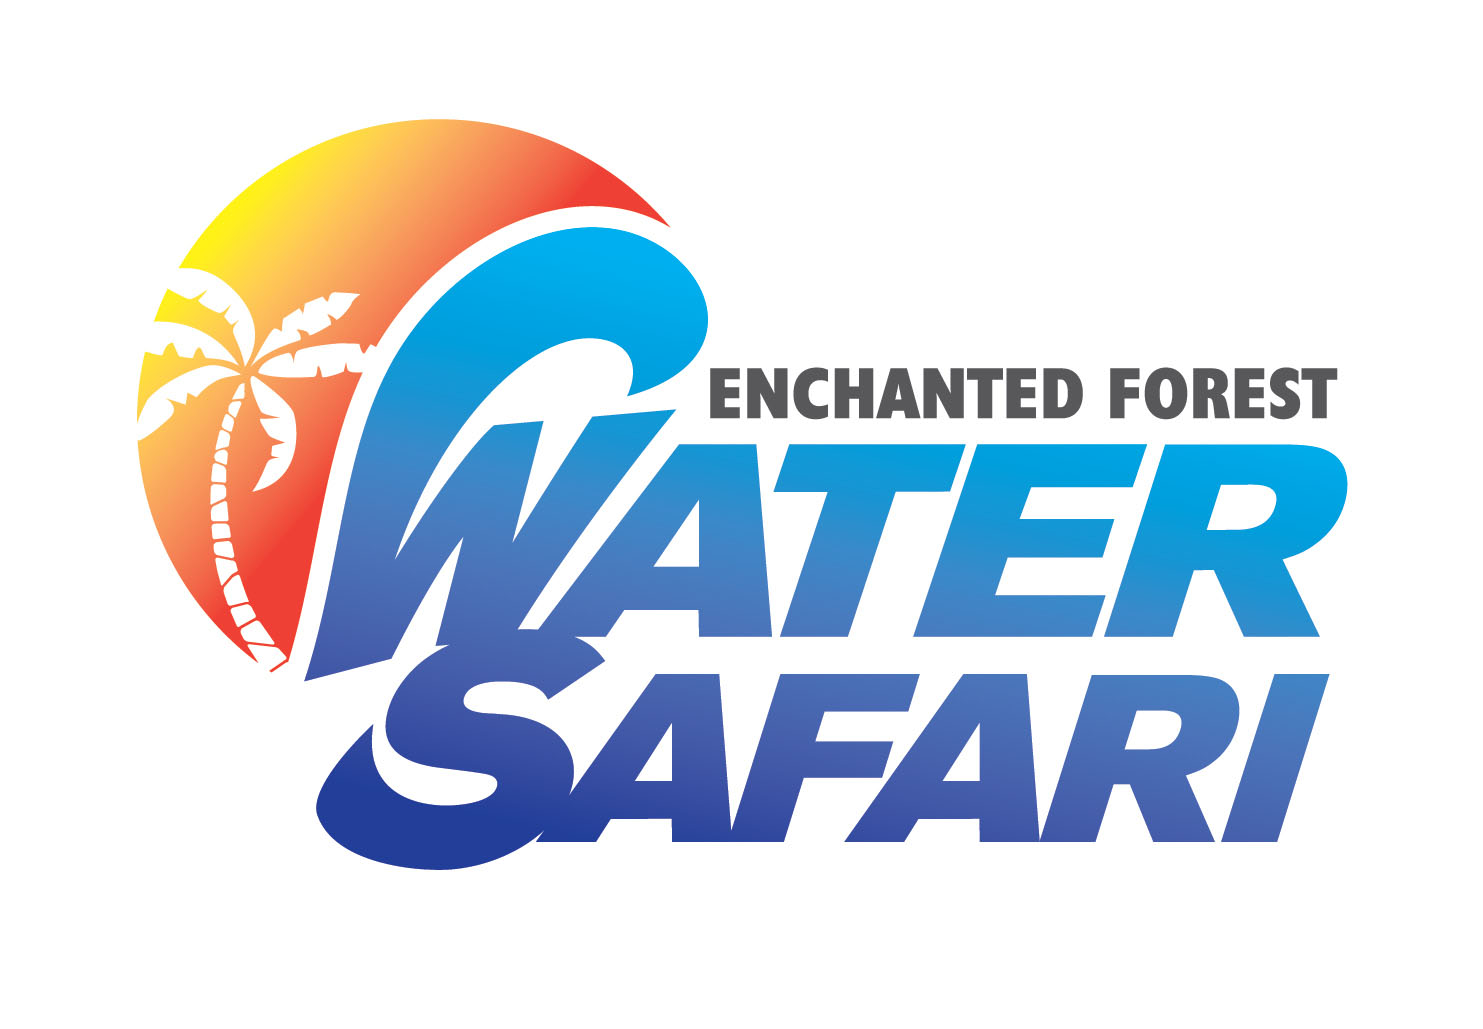 Enchanted Forrest Water Safari